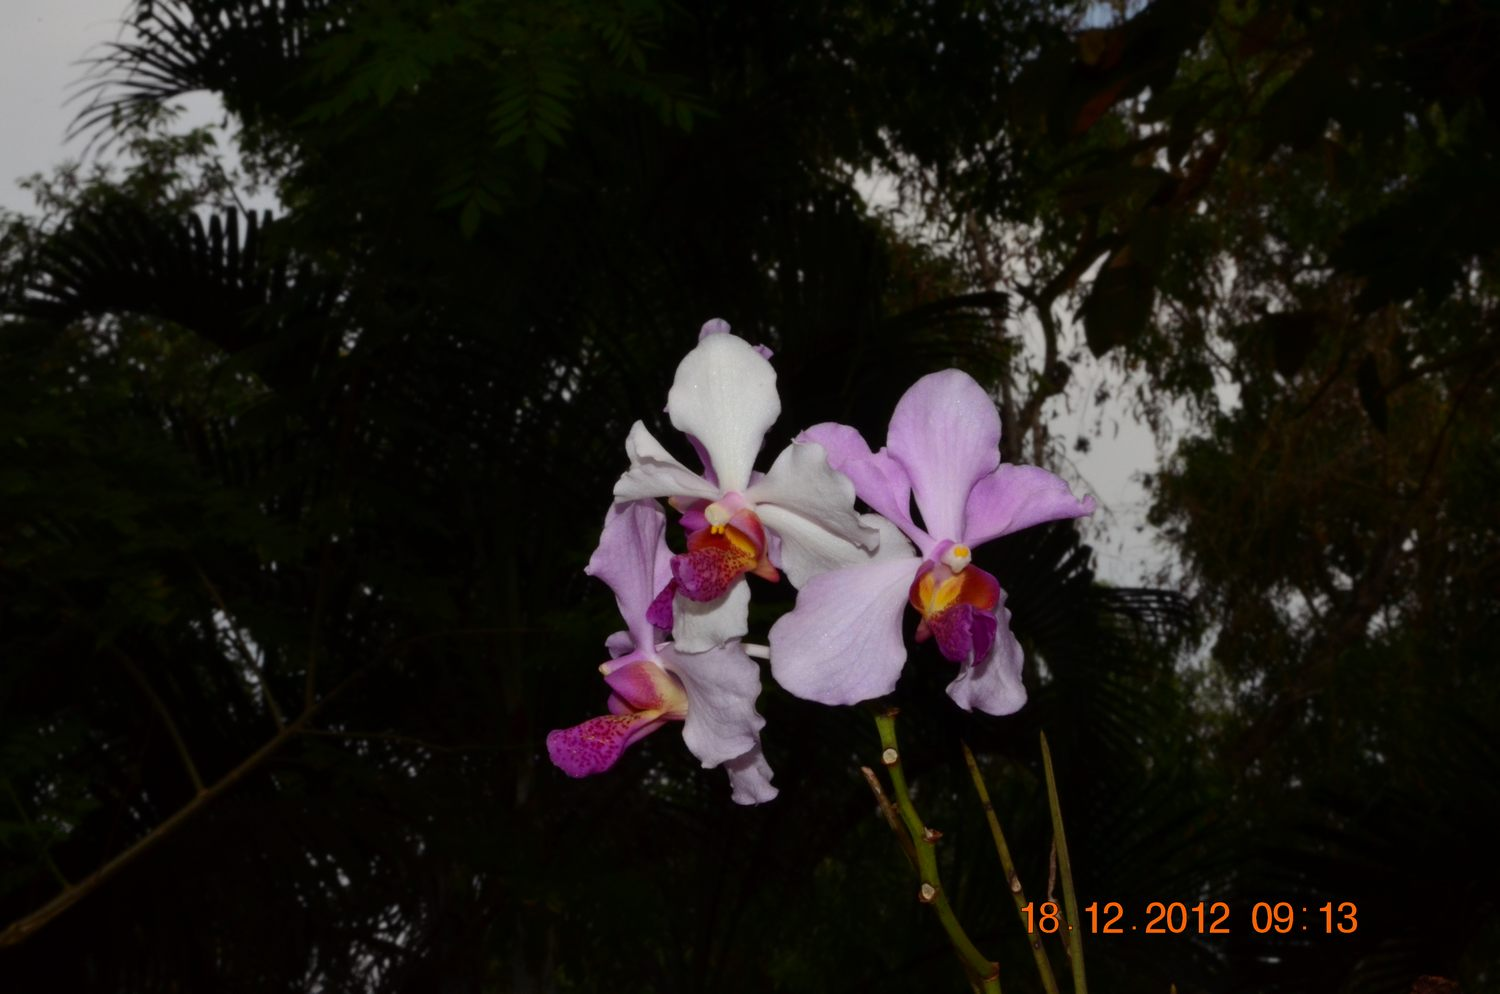 /wp-content/uploads/2020/10/Orchid%20CBG%20-5-.JPG